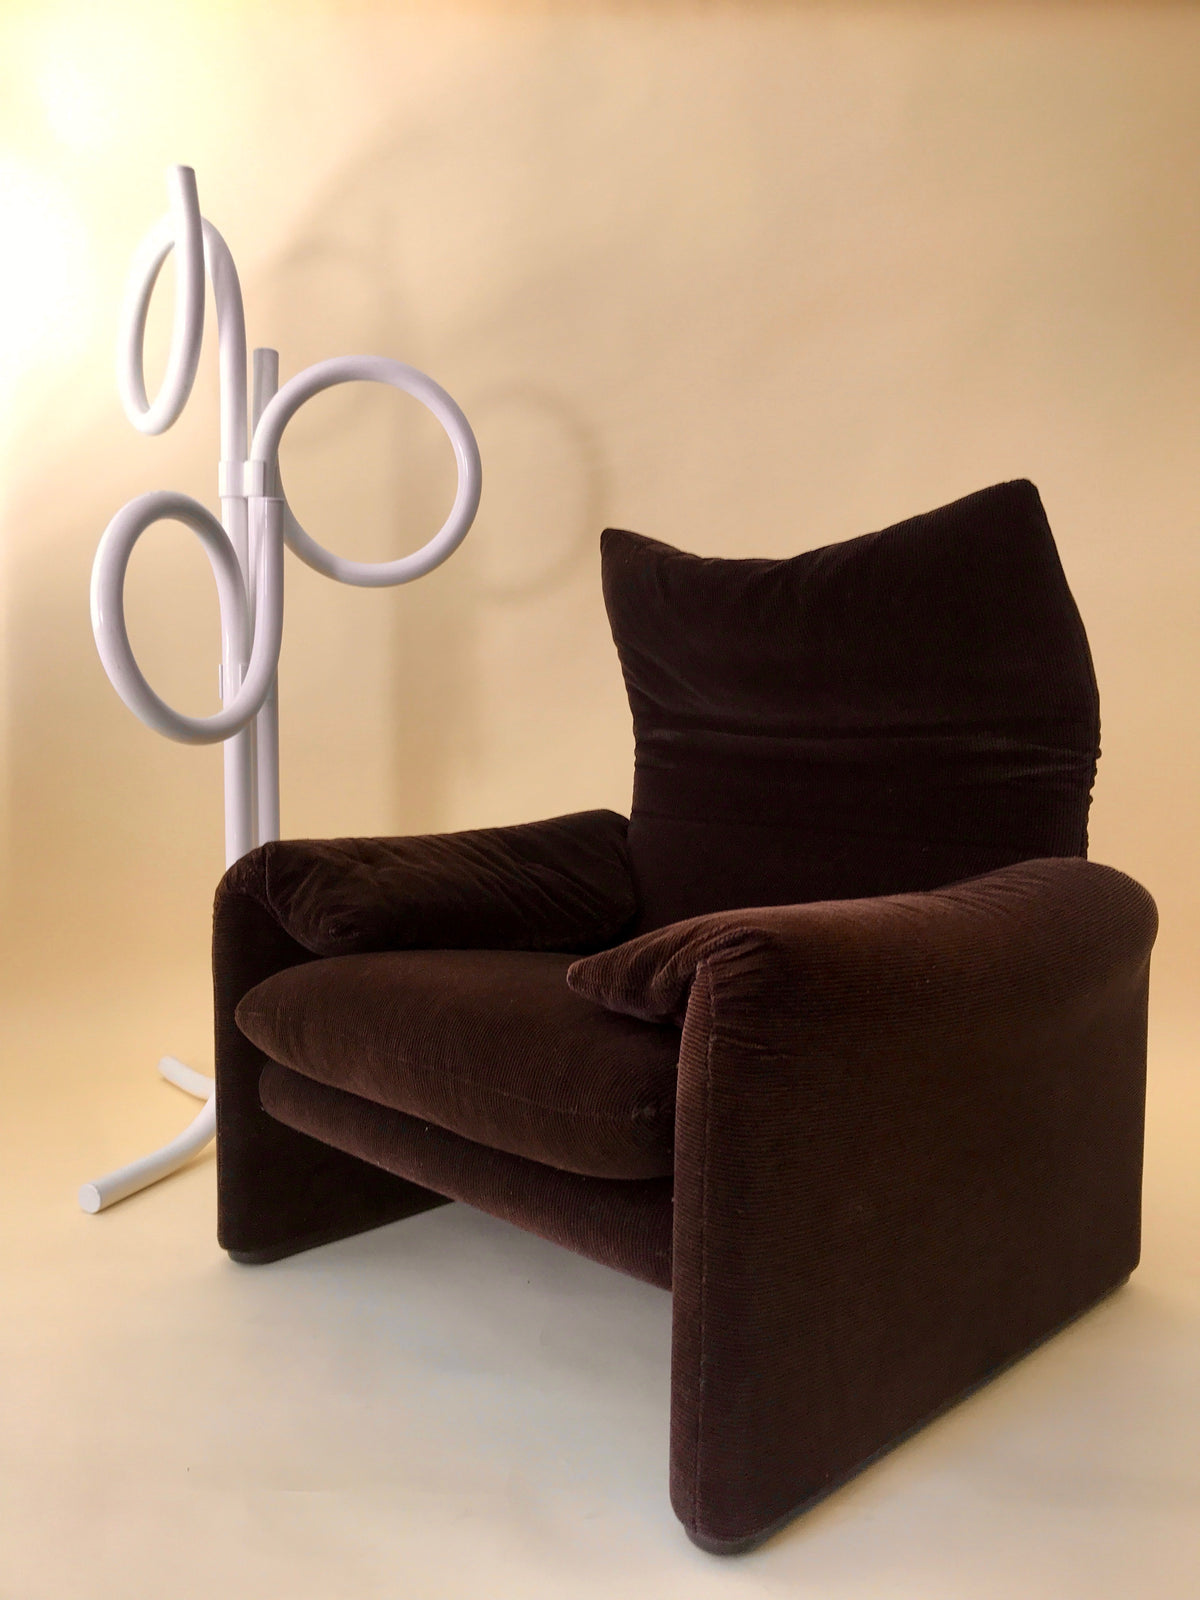 Maralunga Armchair by Vico Magistretti